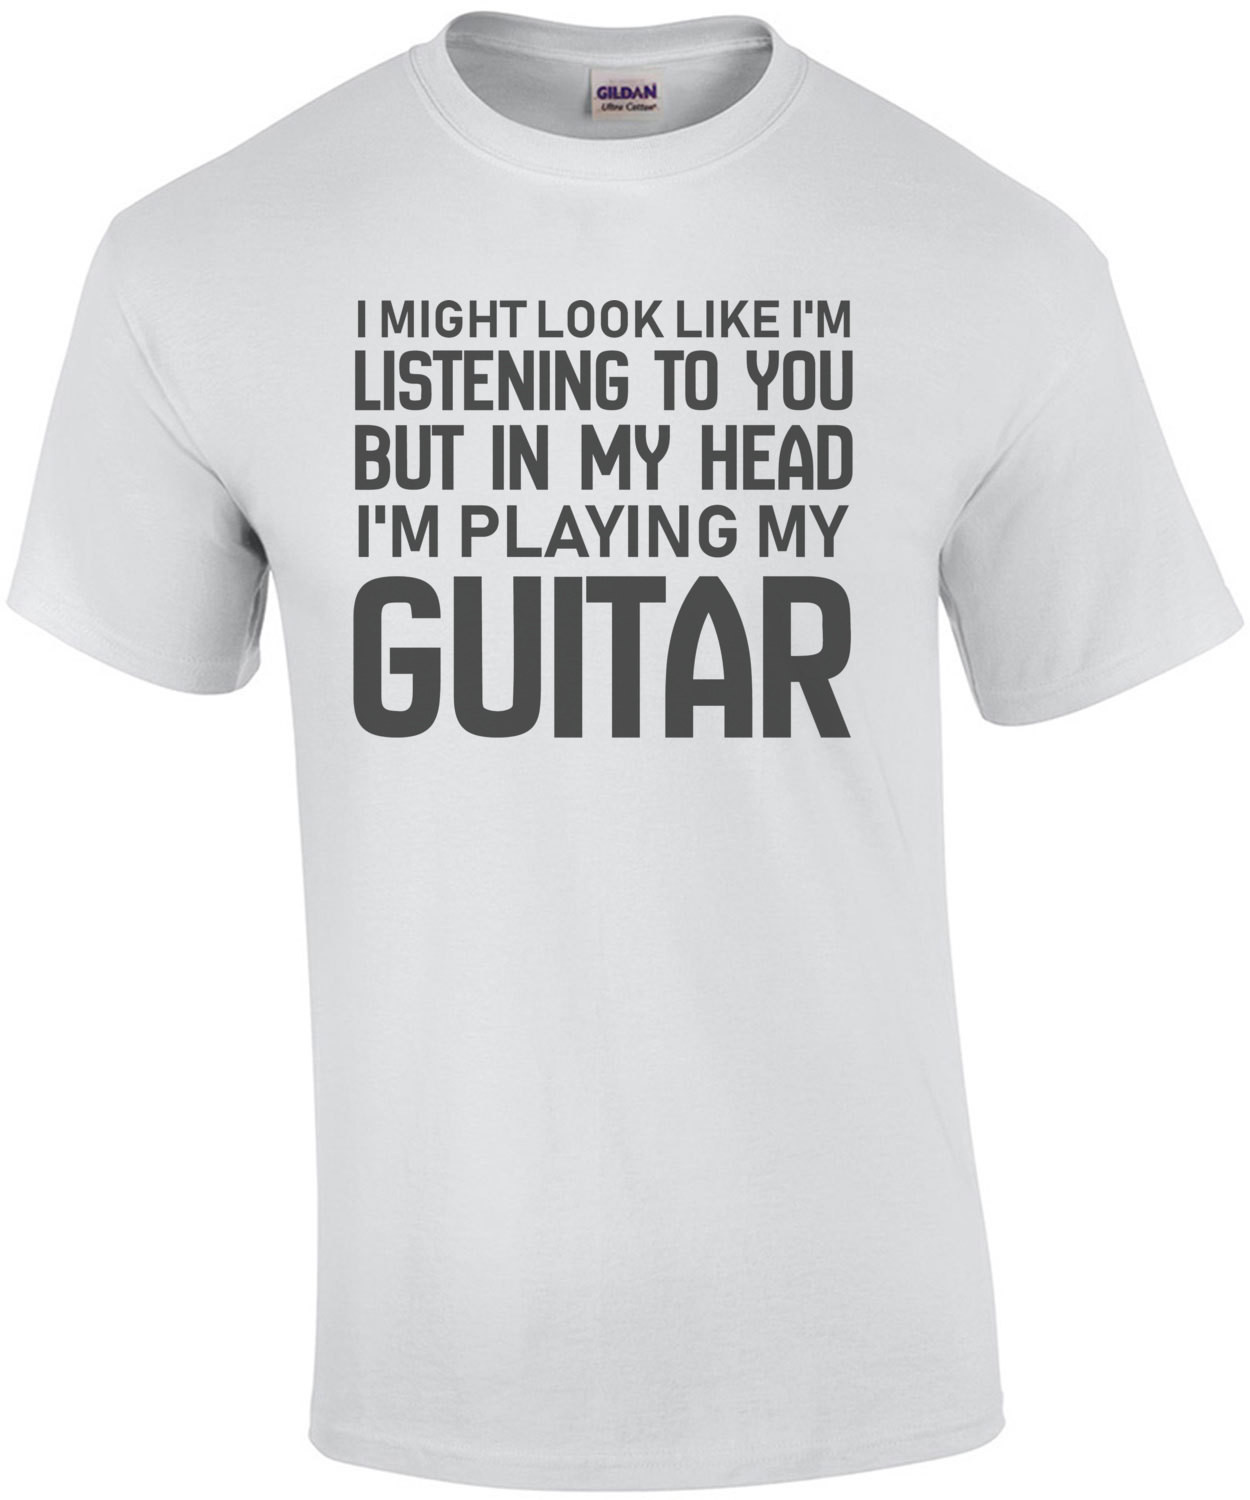 I might look like im listening to you but in my head I'm playing my guitar - funny guitar t-shirt